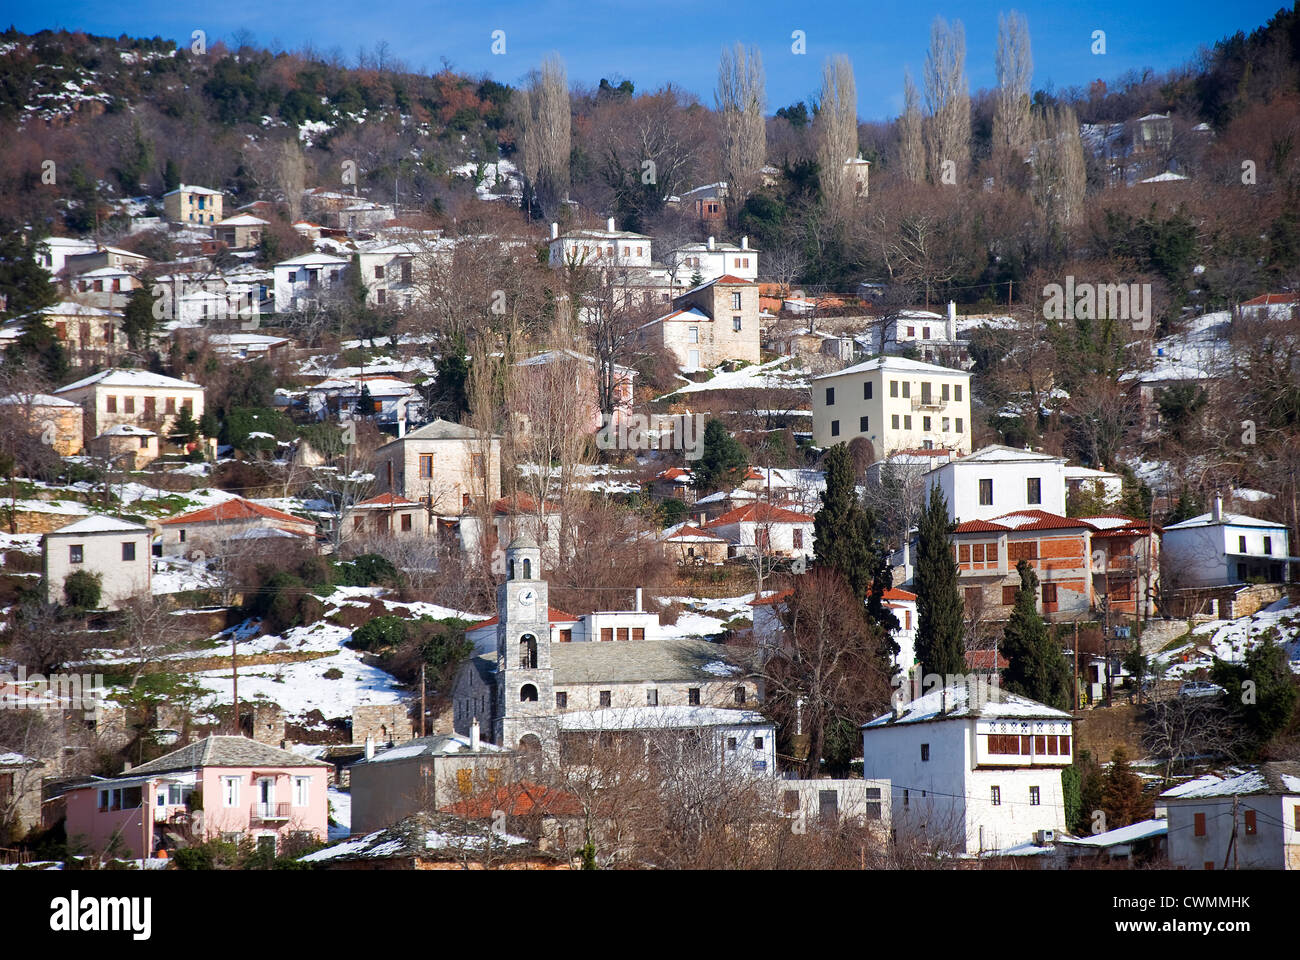 Mountain village Agios Georgios with snowcapped houses in winter (Pelion peninsular, Thessaly, Greece) - Stock Image